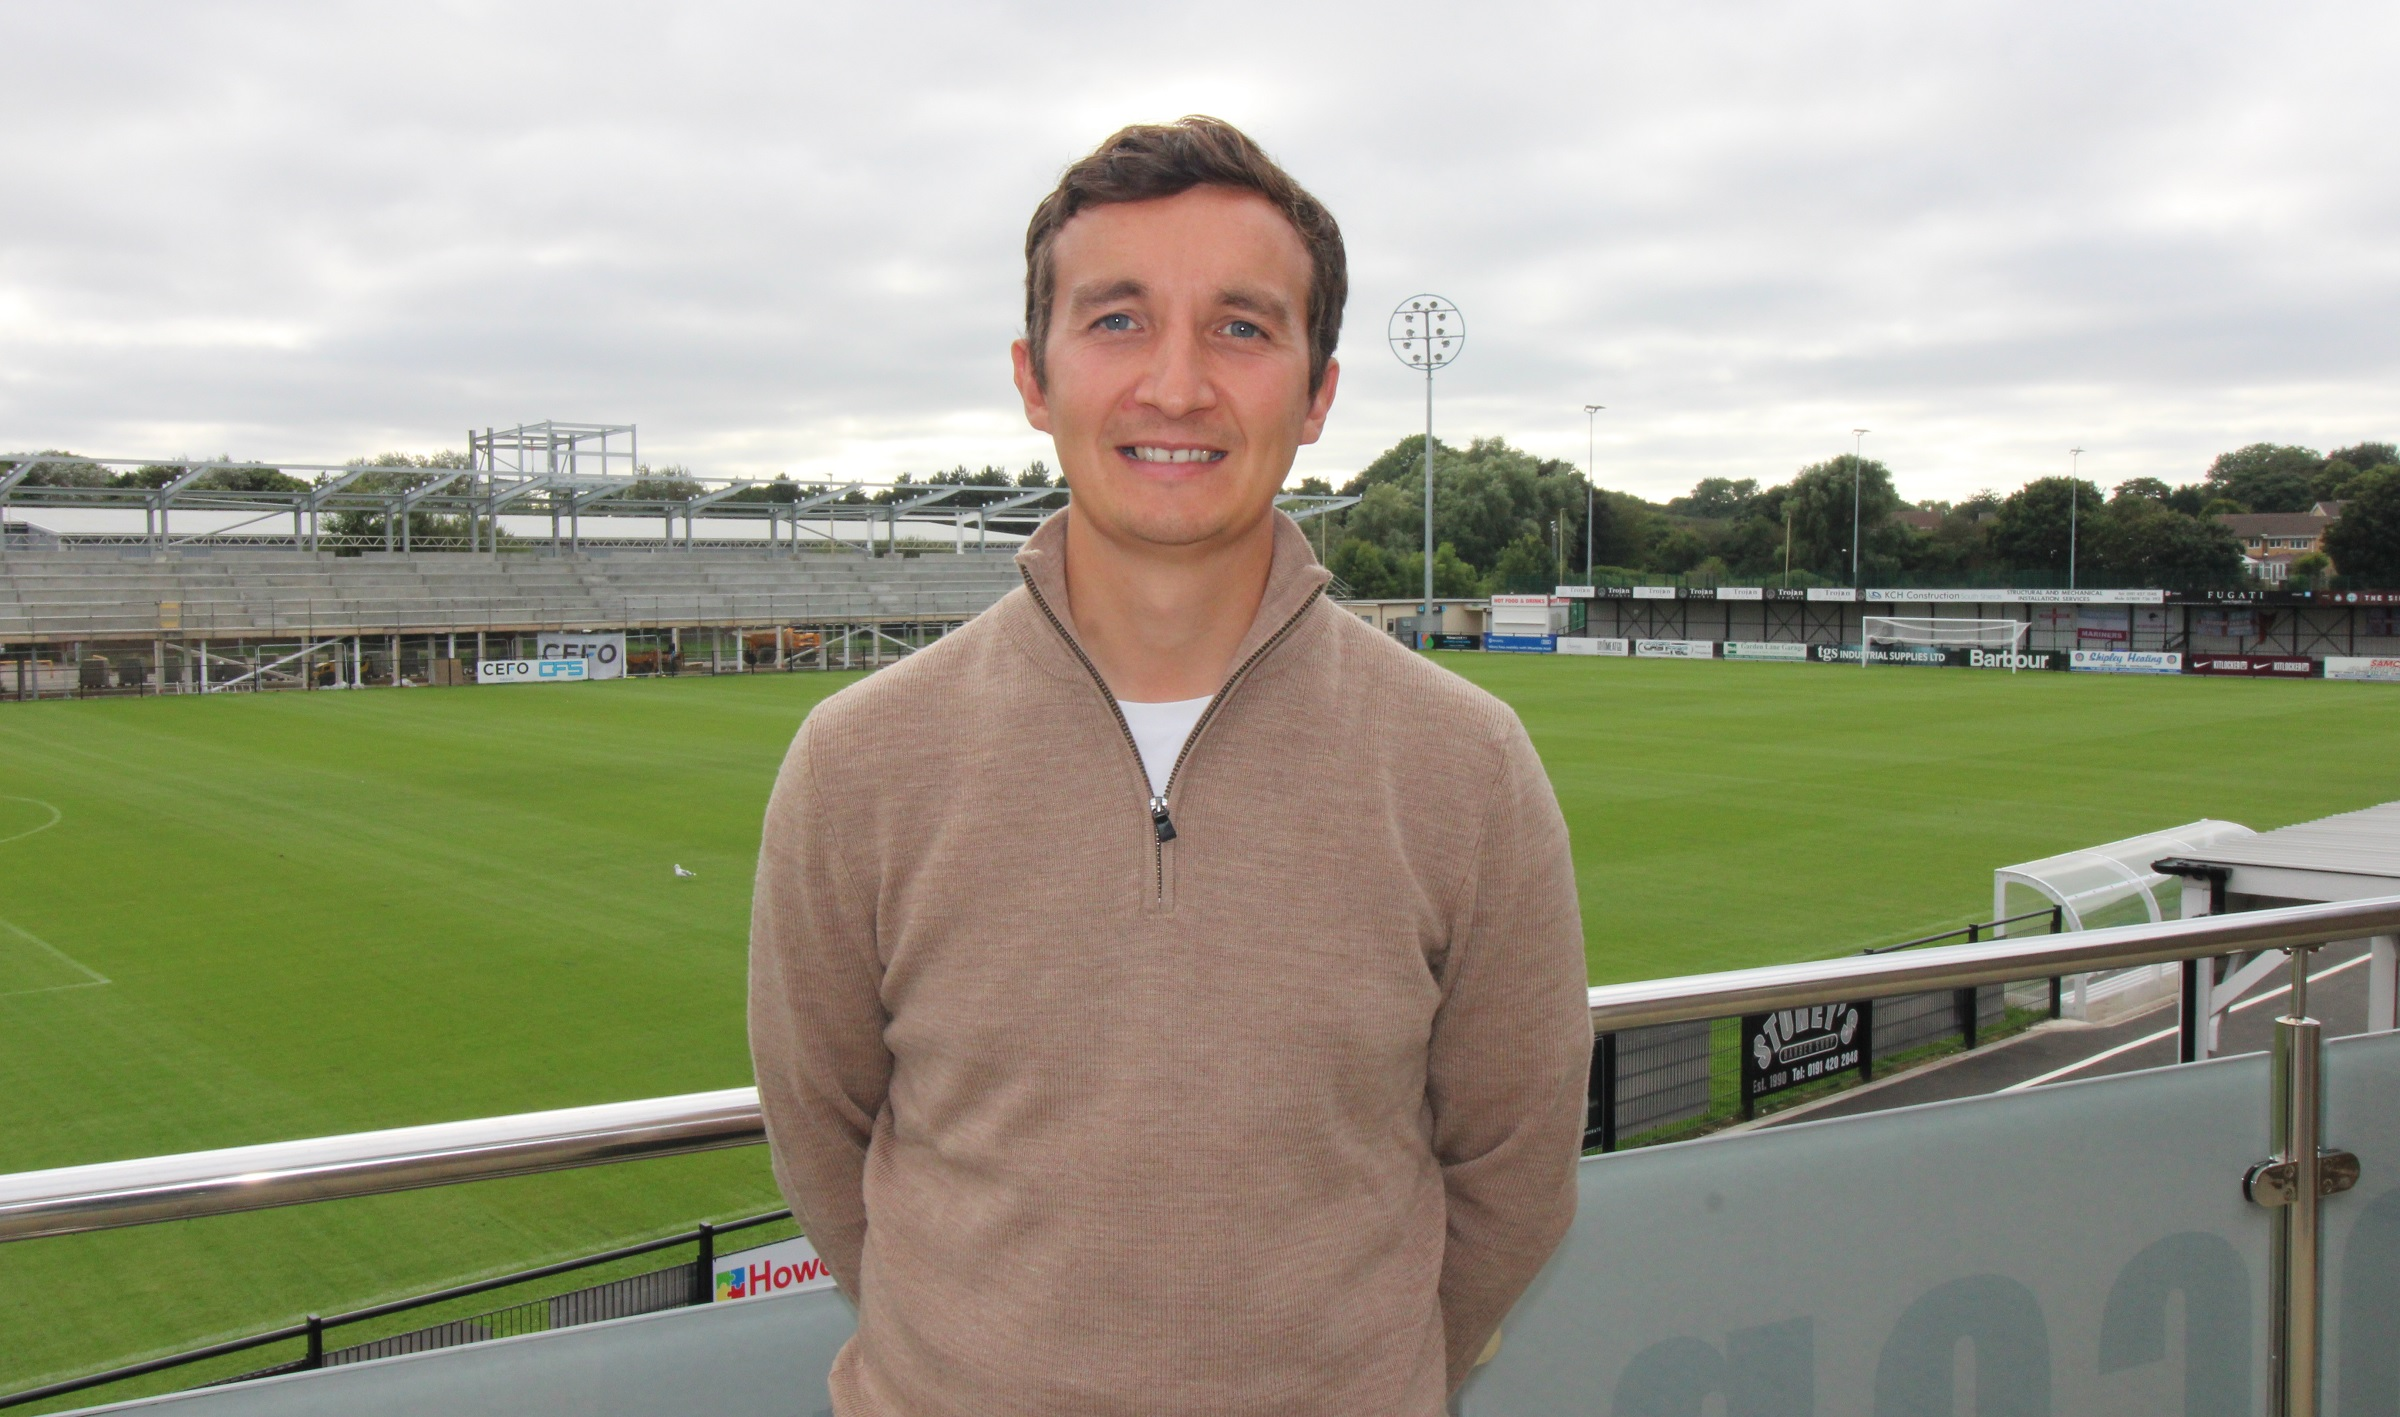 Jamie Williams appointed Director of Business Development and Partnerships